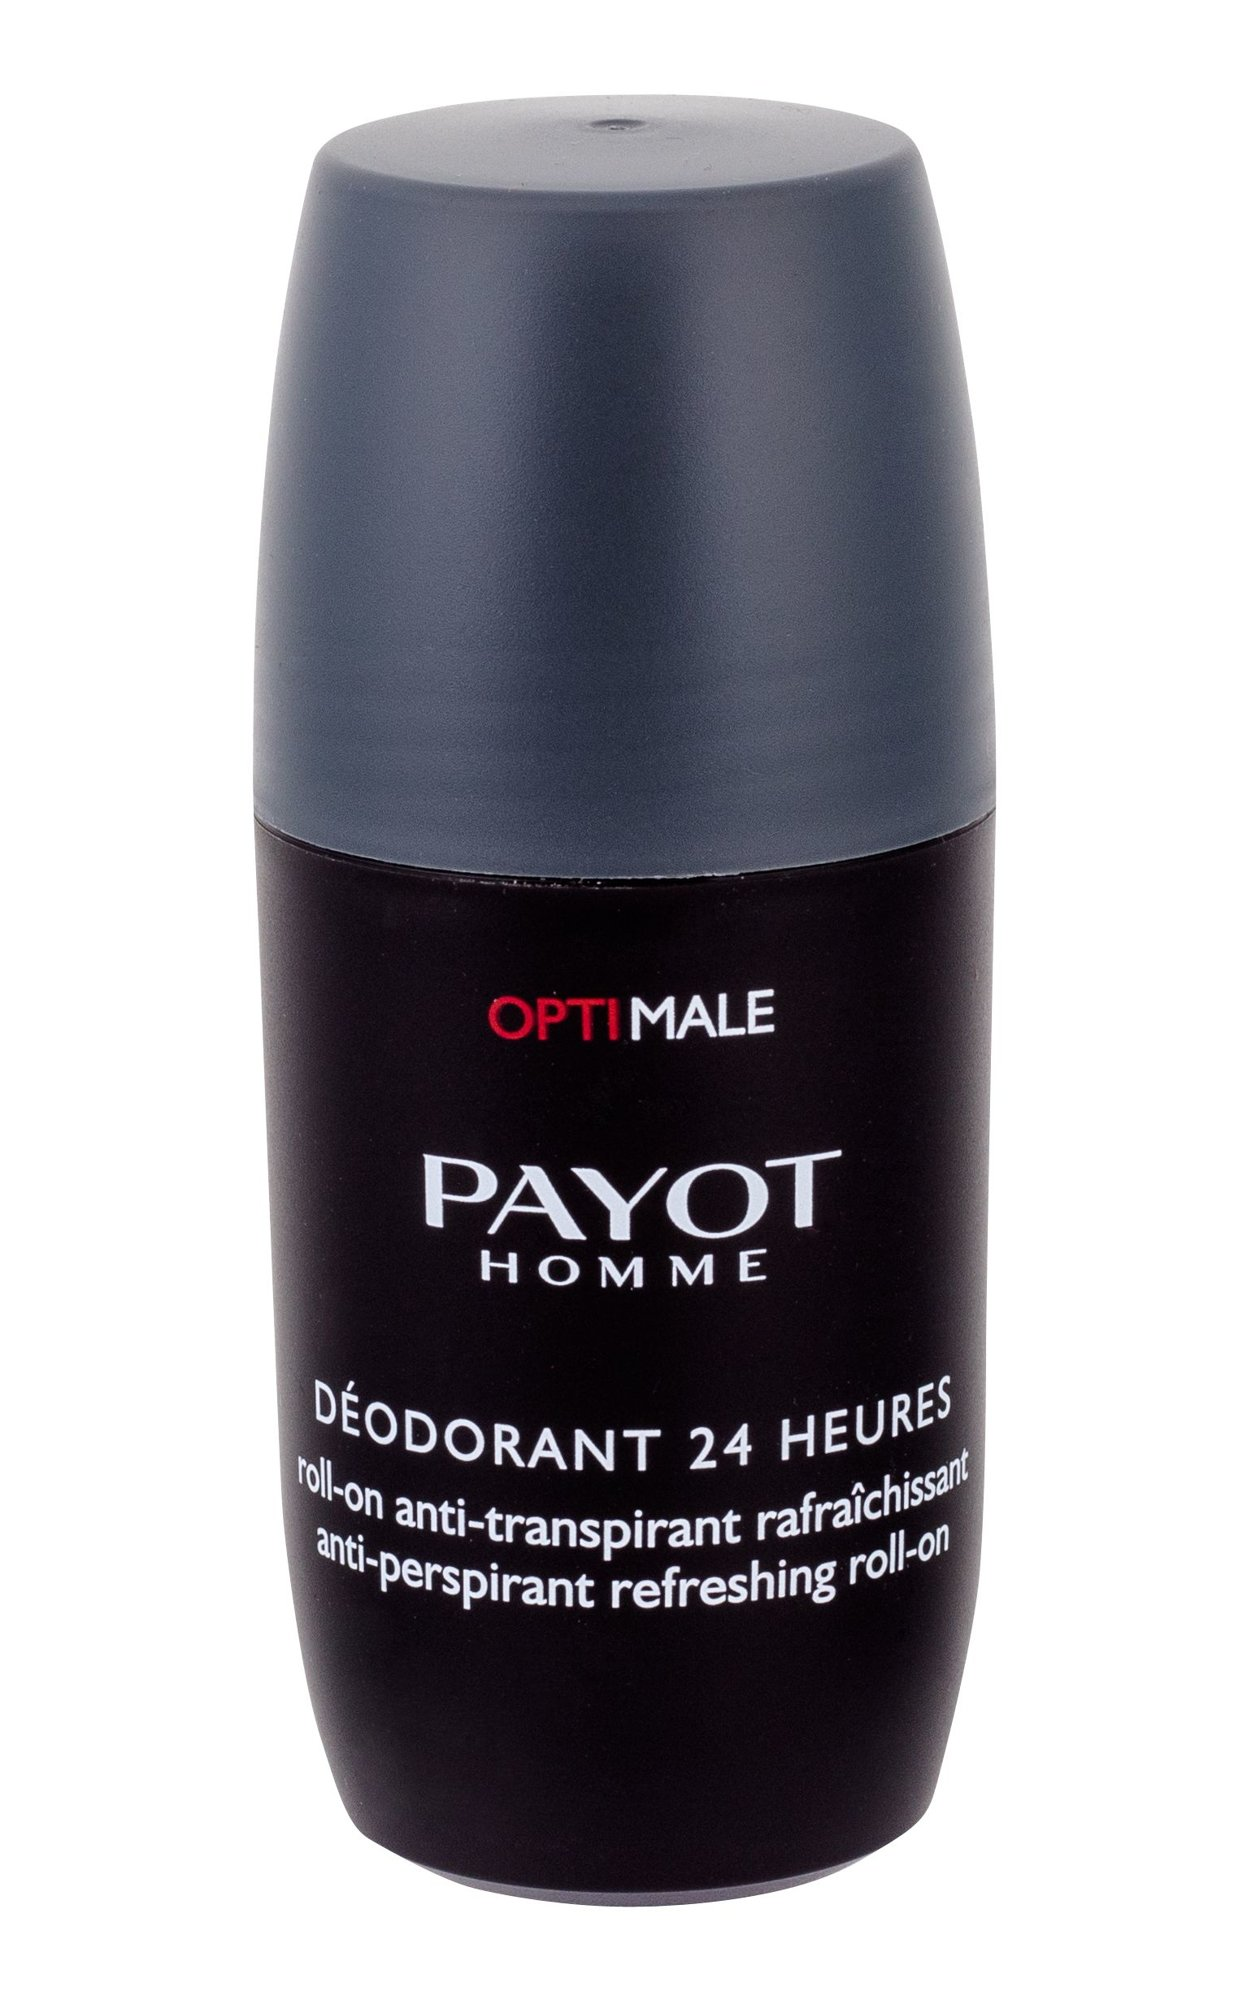 PAYOT Homme Optimale Déodorant 24 Heures, dezodor 75ml